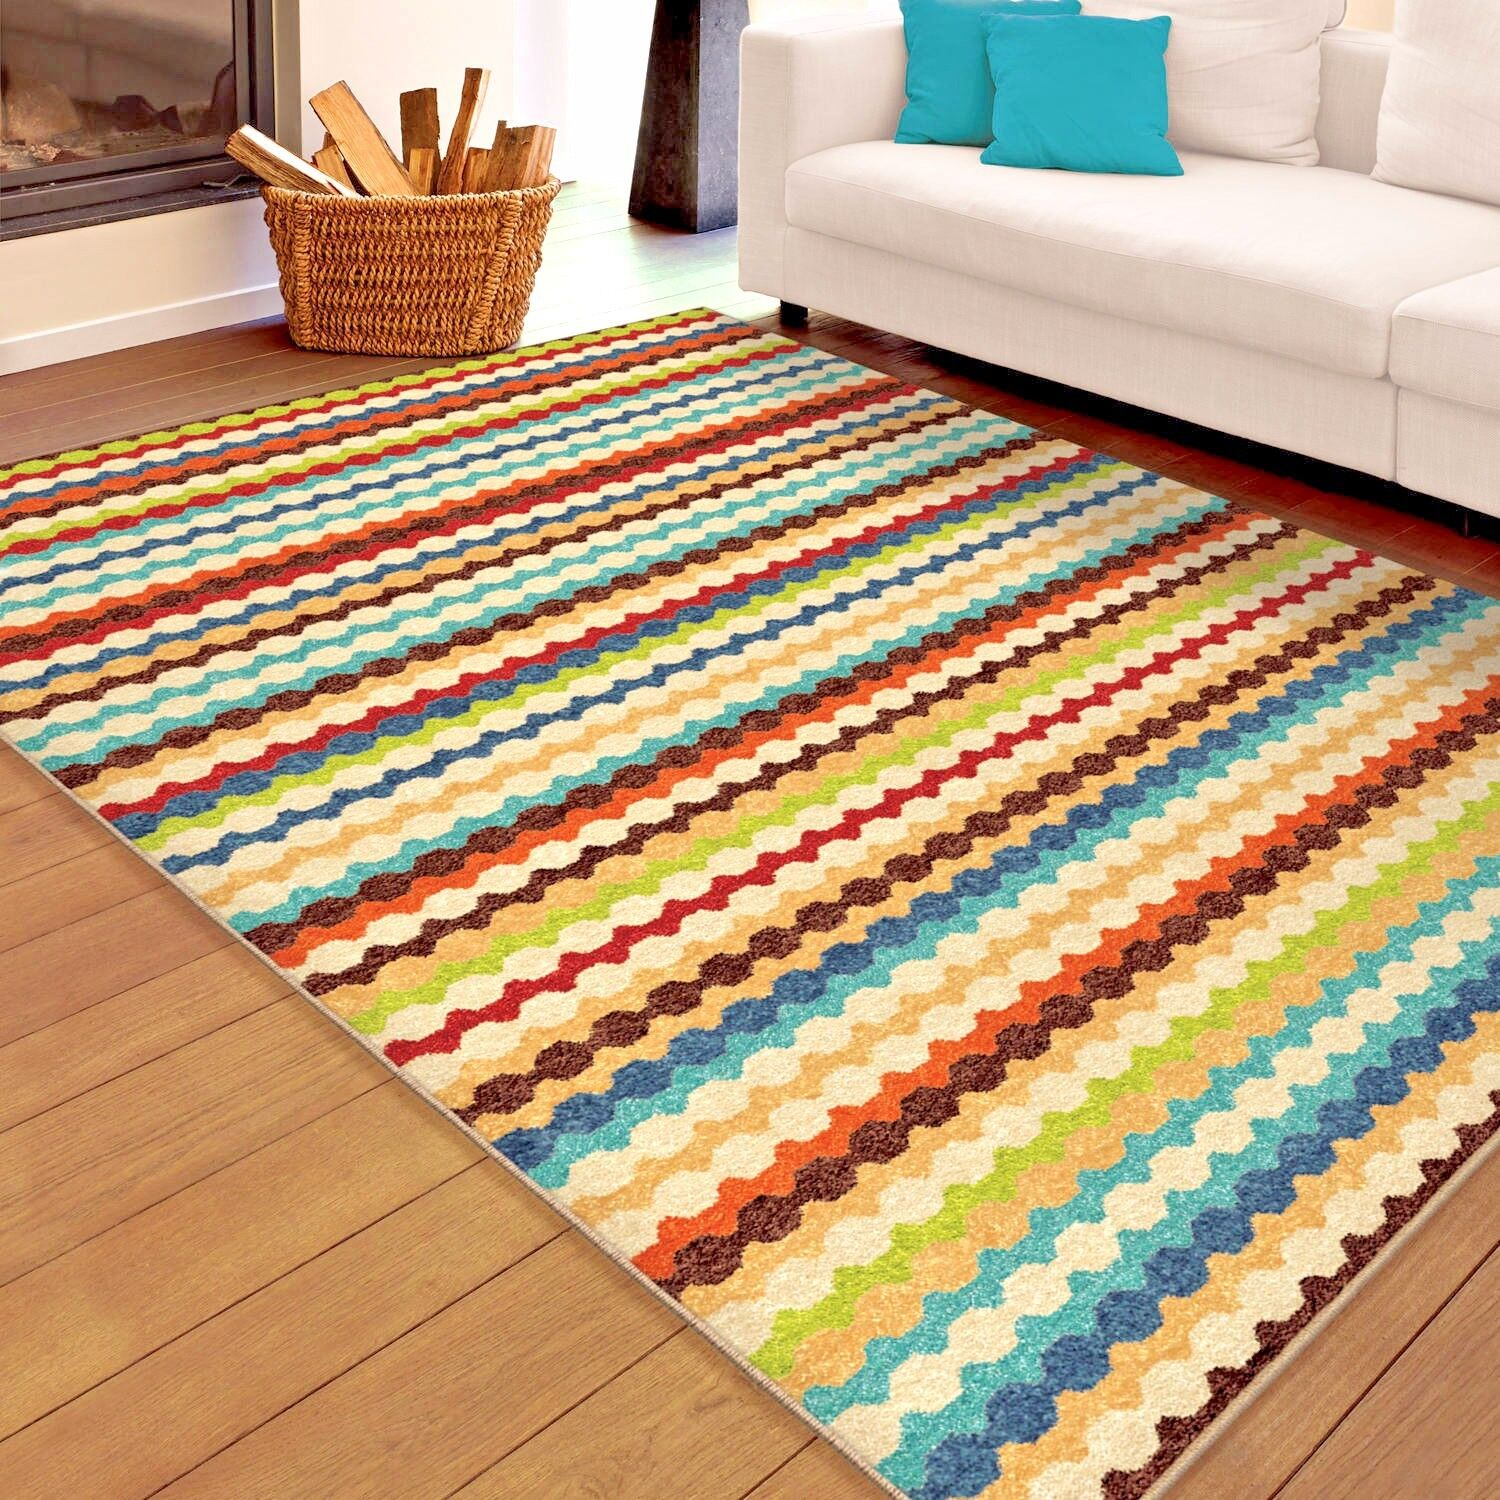 Details about RUGS AREA RUGS CARPETS 8X10 RUG FLOOR MODERN LARGE COLORFUL  BIG LIVING ROOM RUGS